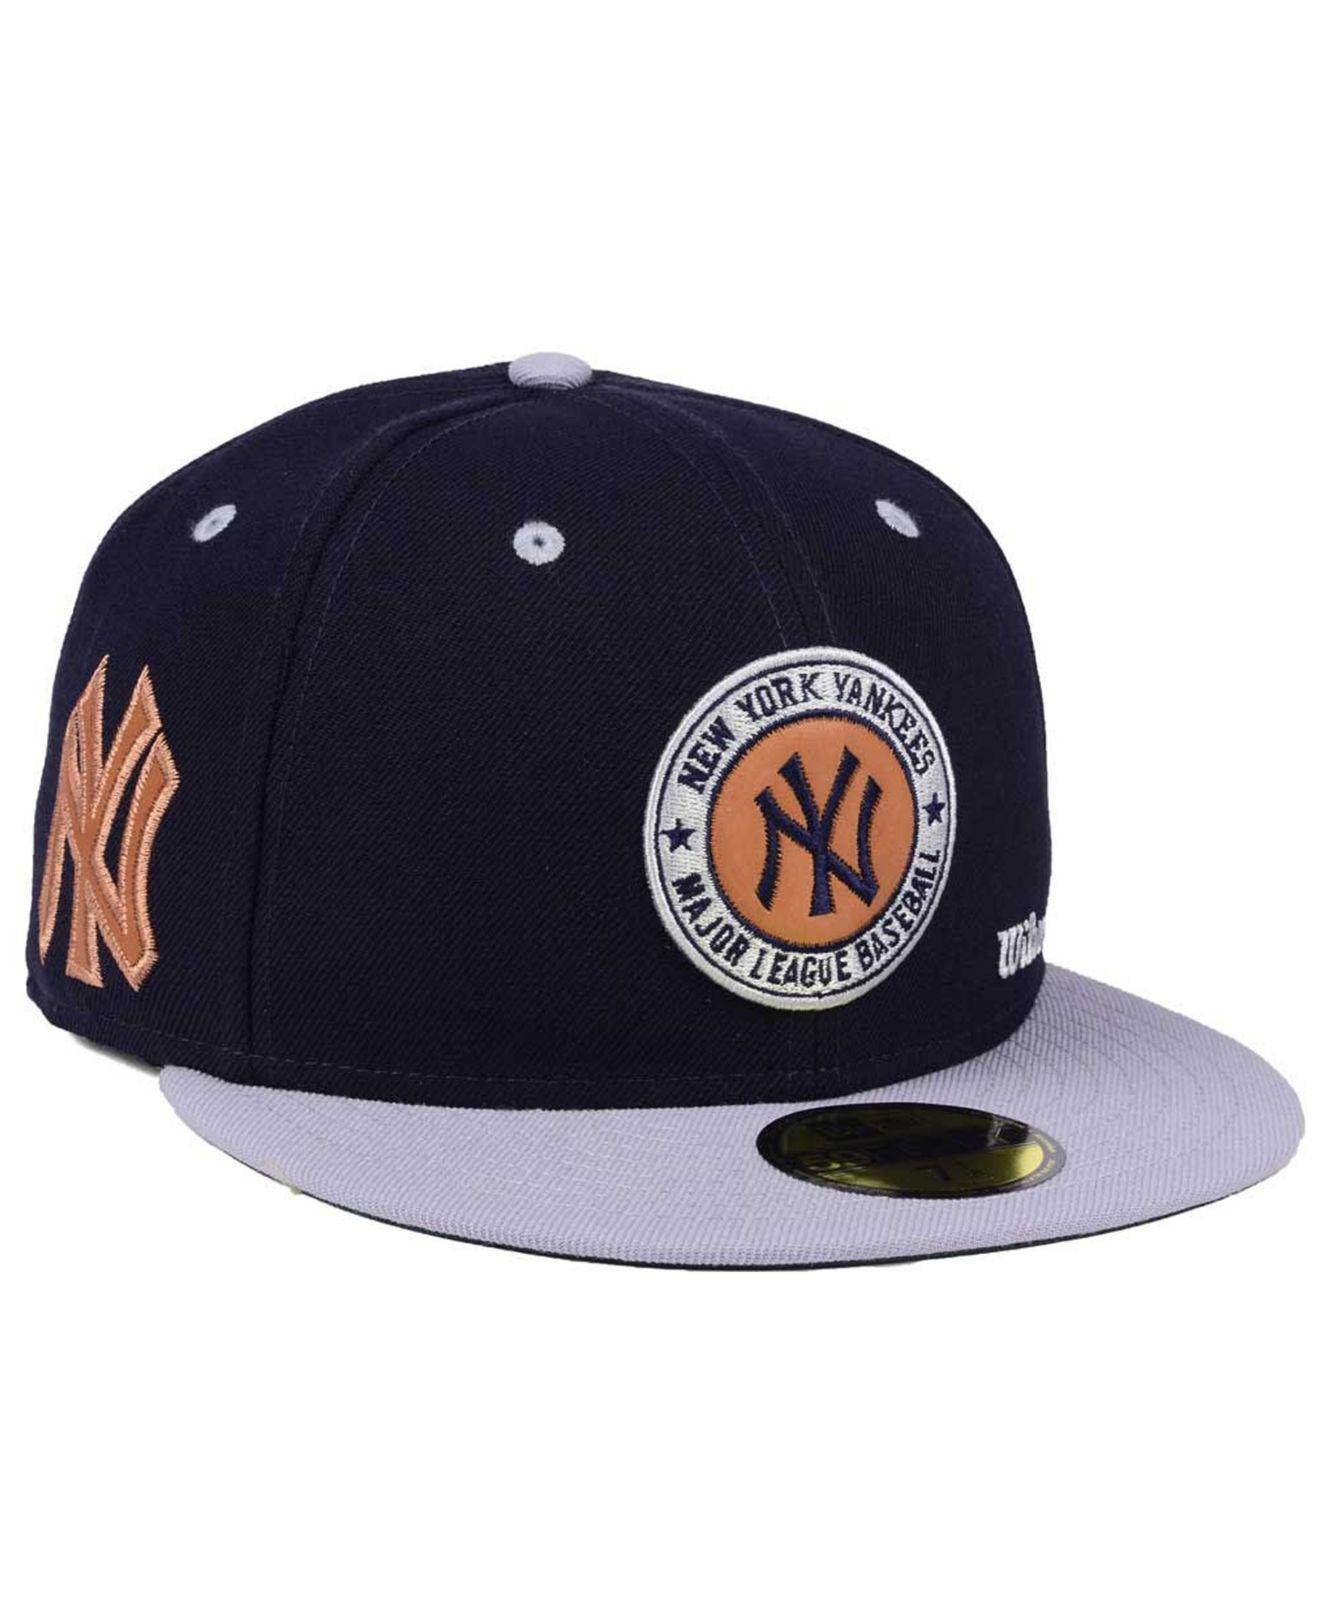 reputable site 5734a 49f98 ... cheapest ktz. mens blue new york yankees x wilson circle patch 59fifty  fitted cap 5f783